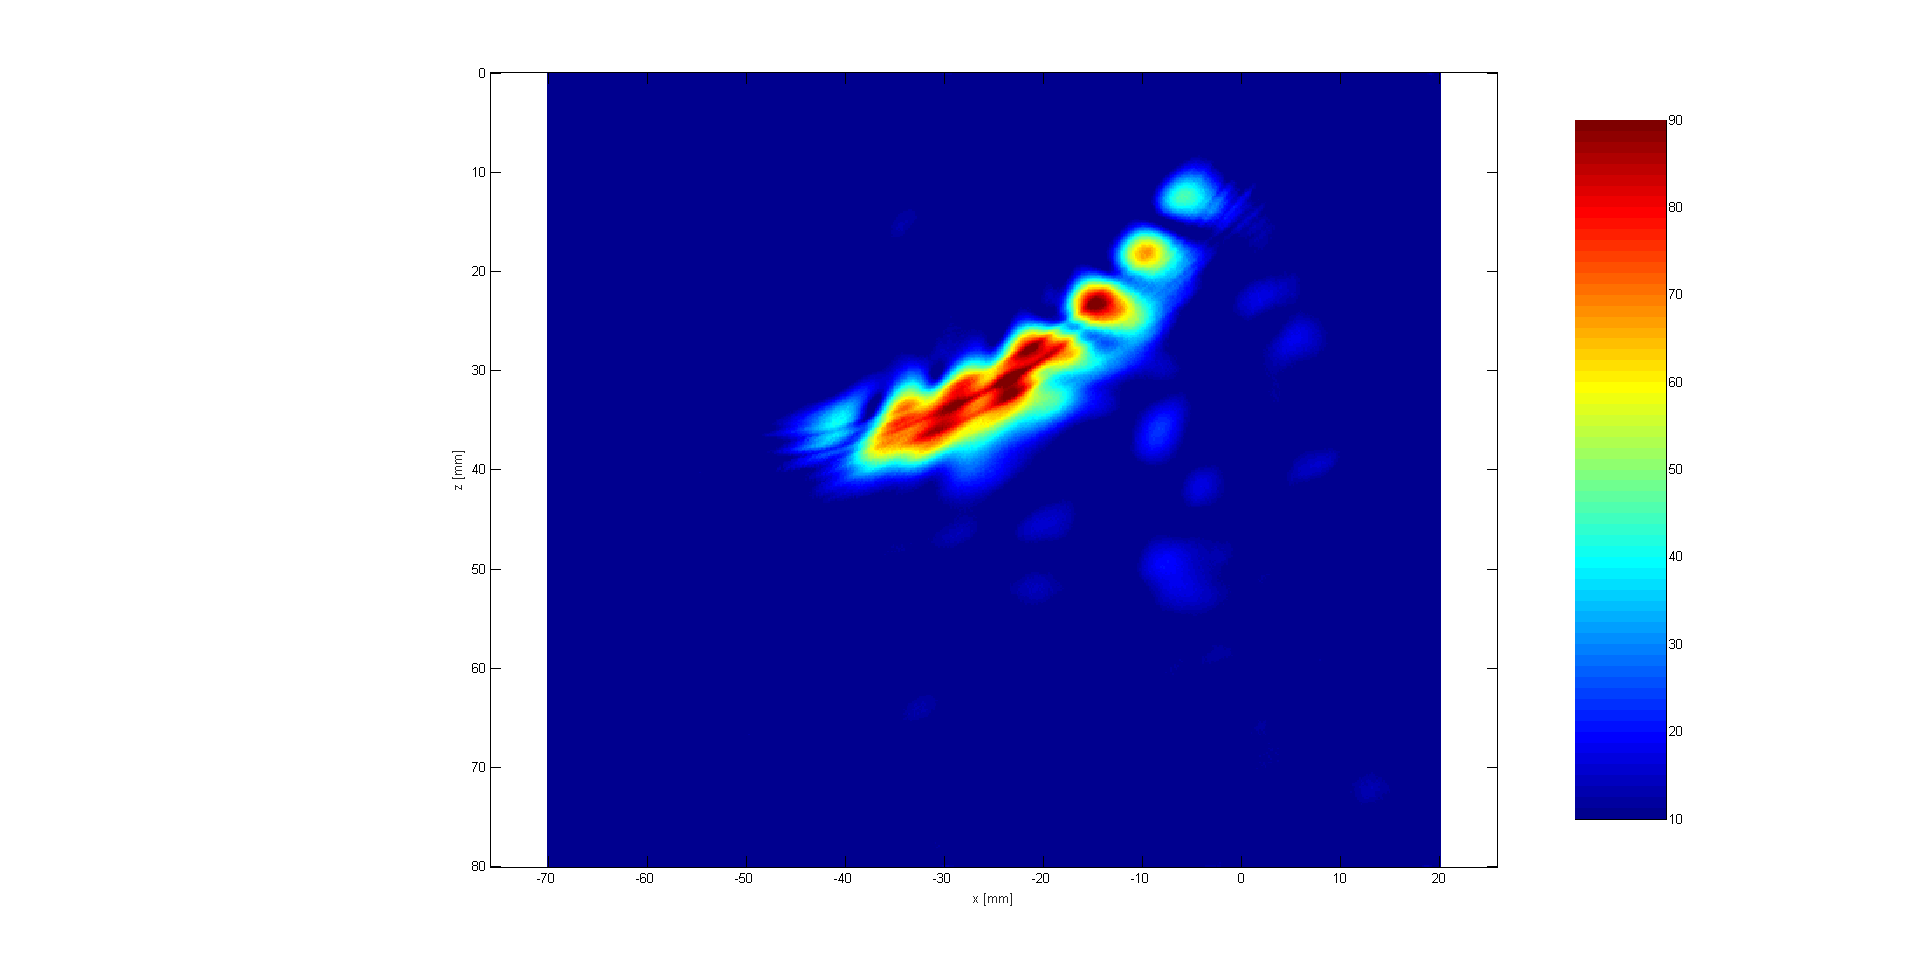 Image of Small R holes using 1 MHz probe